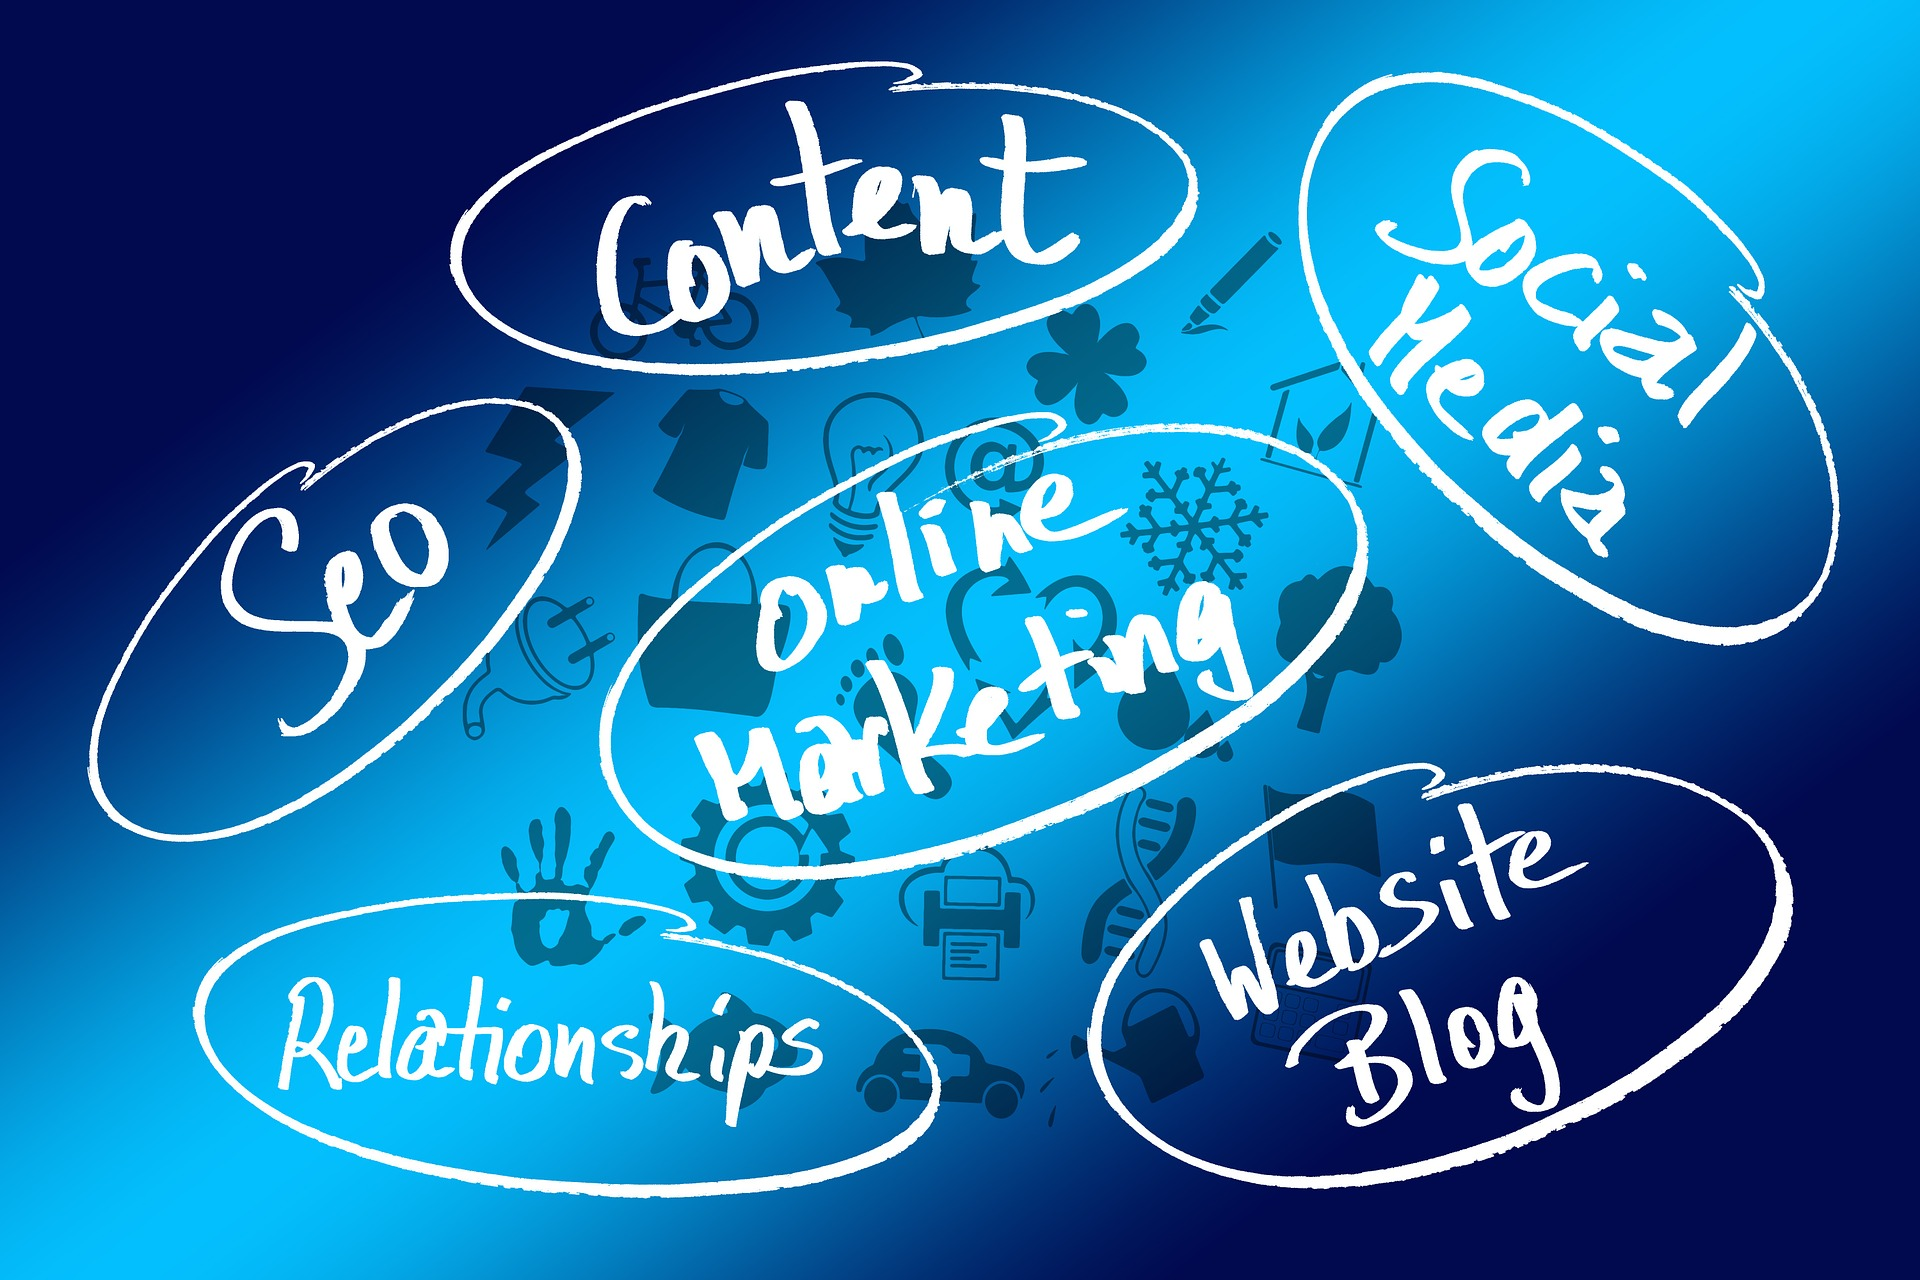 Marketing Services in Downers Grove